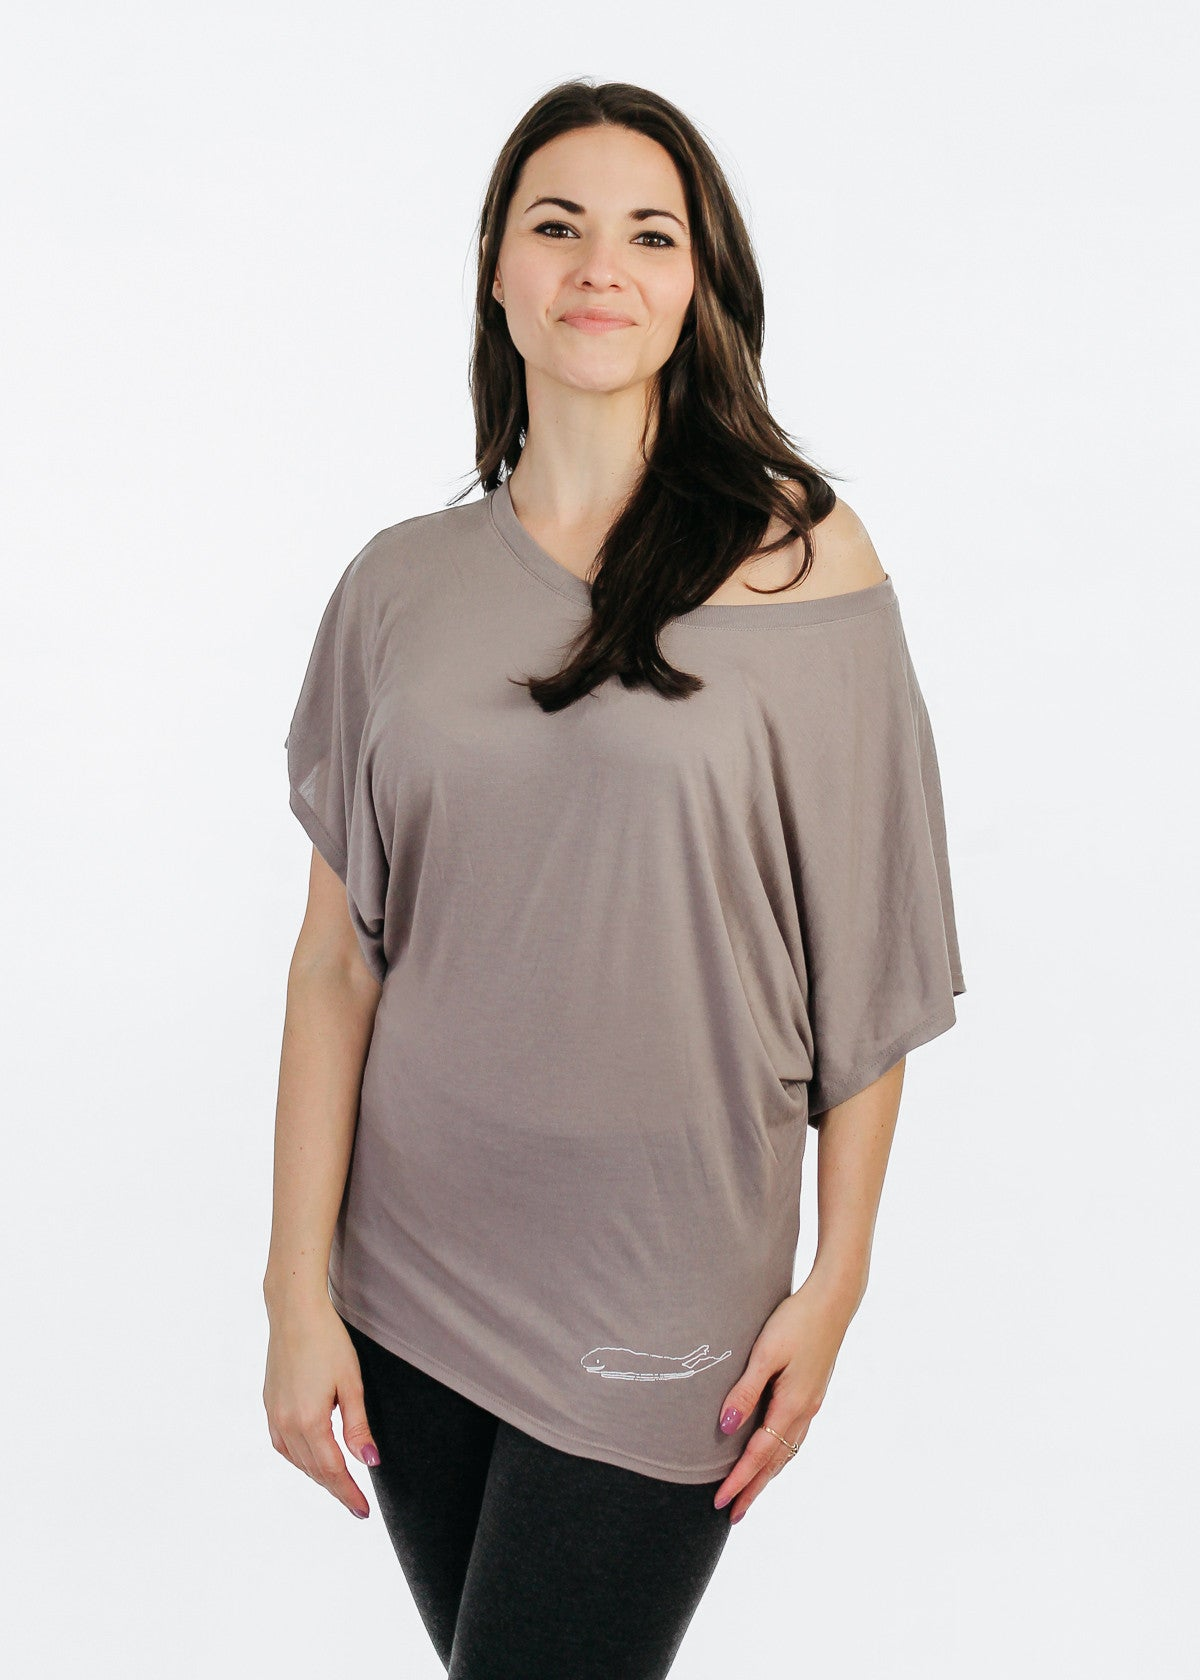 Ladies Shirt: Flowy Dolman Sleeve - Brown Pebble - Love The Island